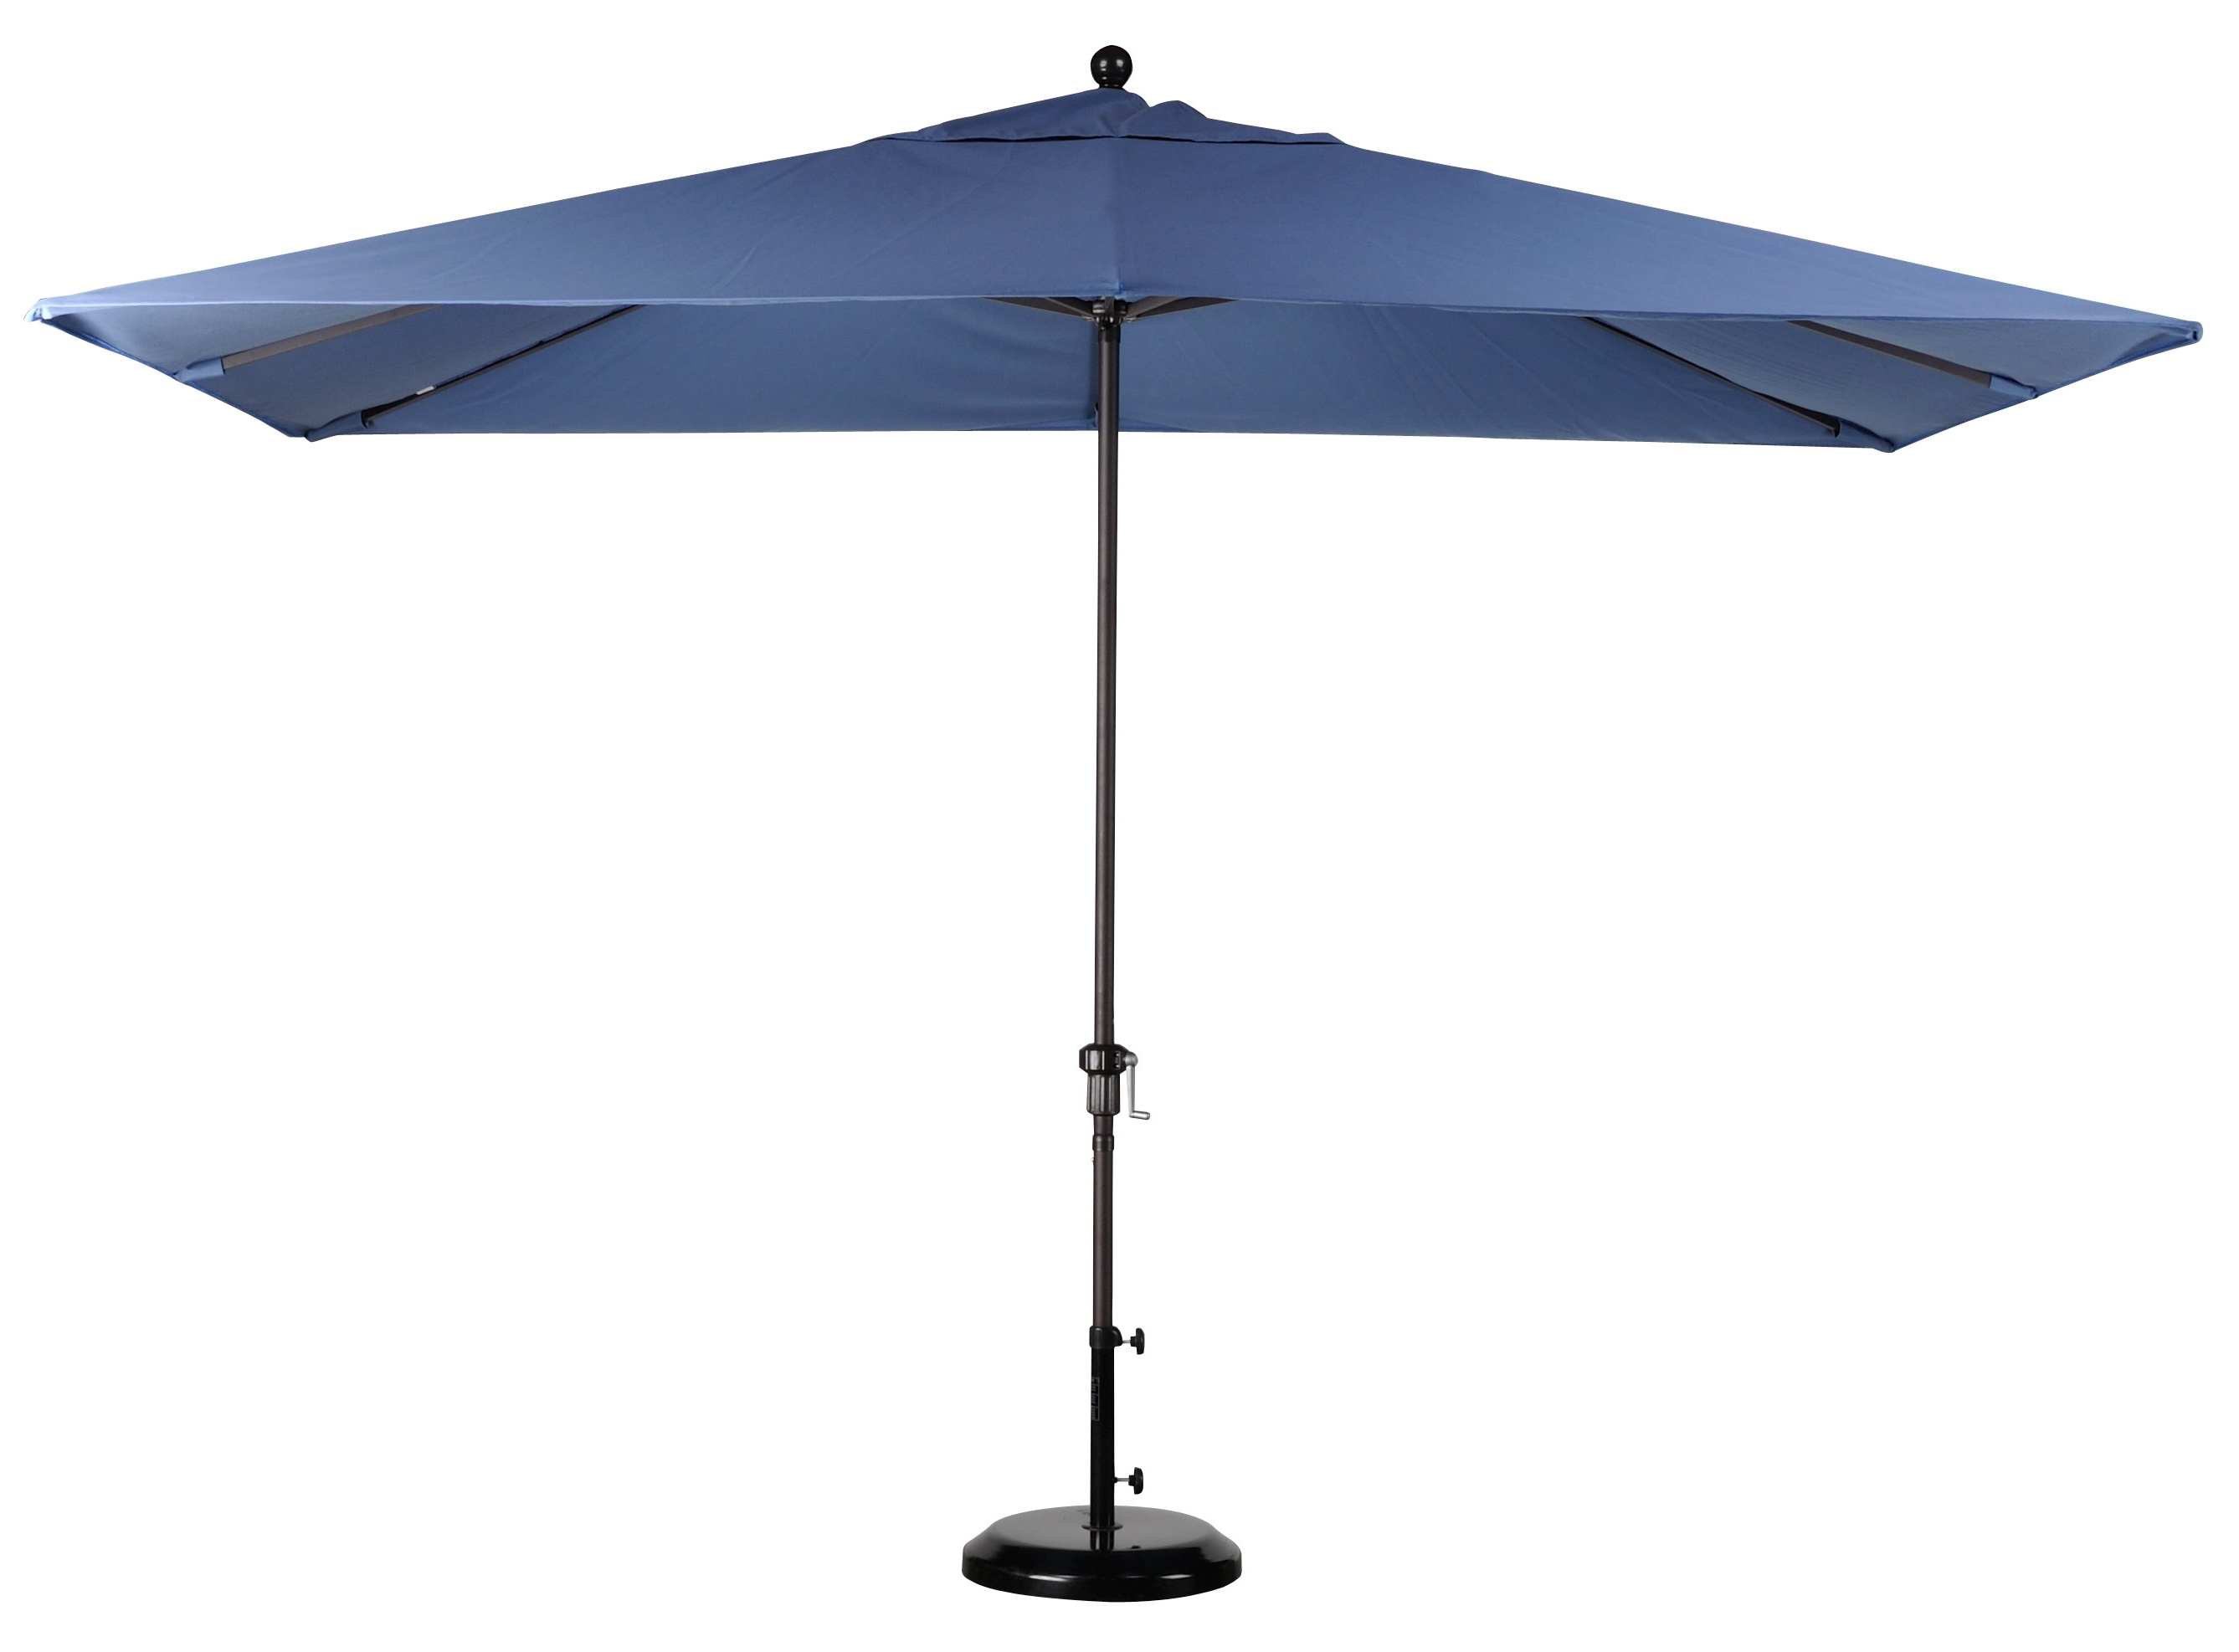 Best Selection Rectangular Market Umbrellas – Featuring Sunbrella For Well Known Square Sunbrella Patio Umbrellas (Gallery 5 of 20)